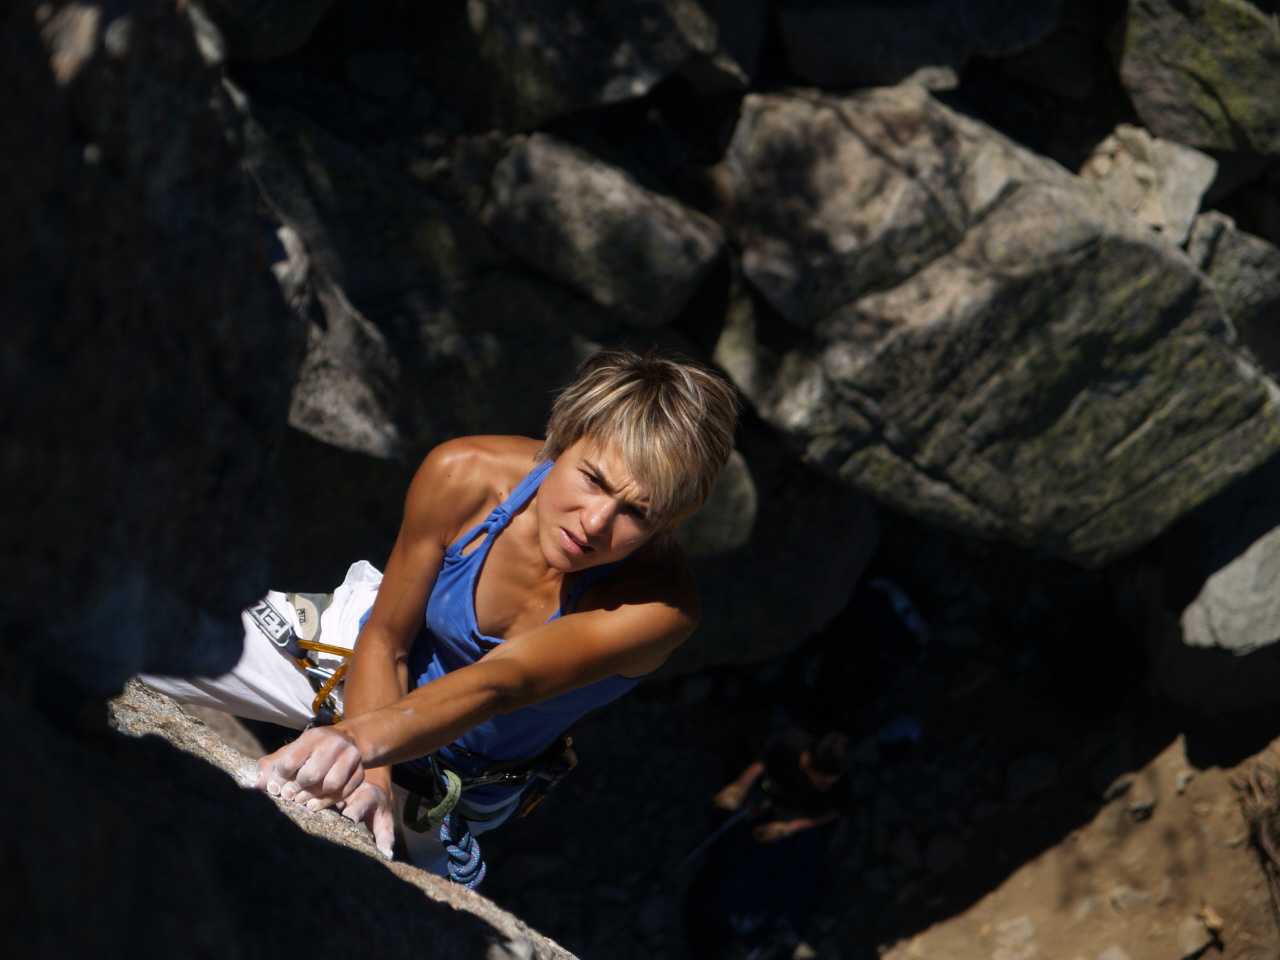 Ex-world champion and 8c+ climber Liv Sansoz, 222 kb